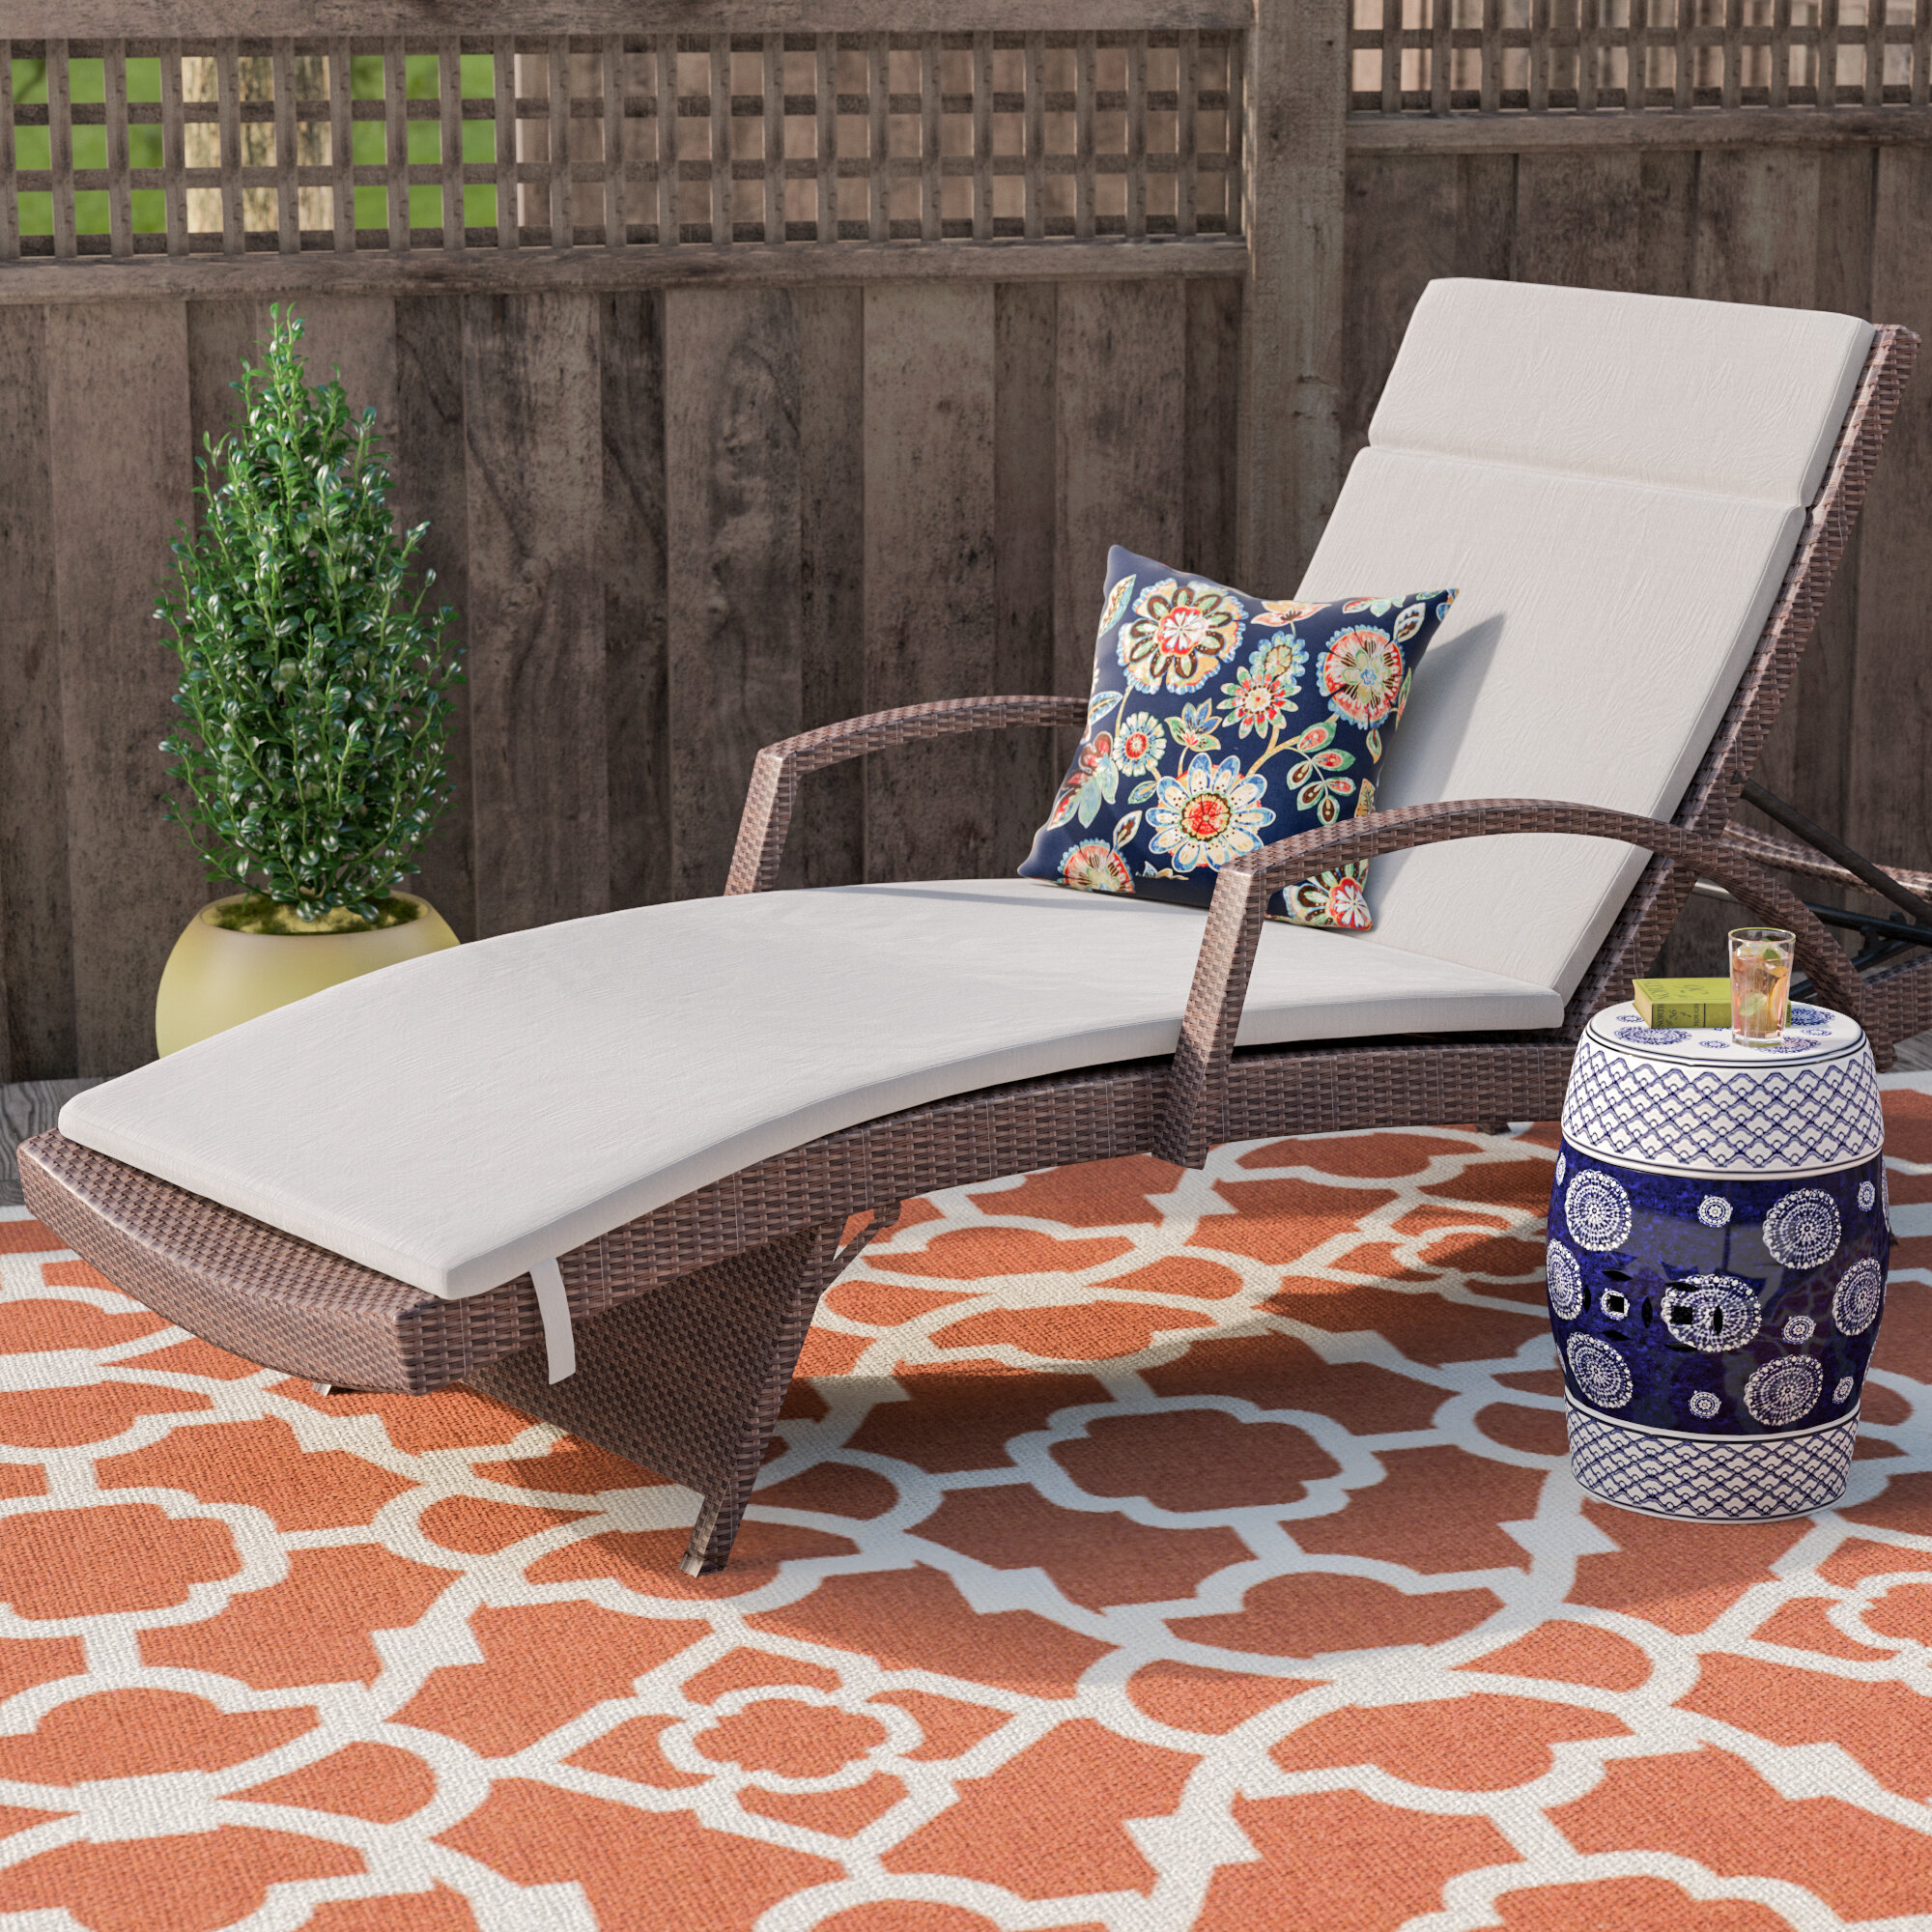 on w replacement lakeview by ultimatepatio extra chaise ldf designs cushion piping lounge patio ultimate audubon mist gateway com long outdoor sale set sunbrella cushions